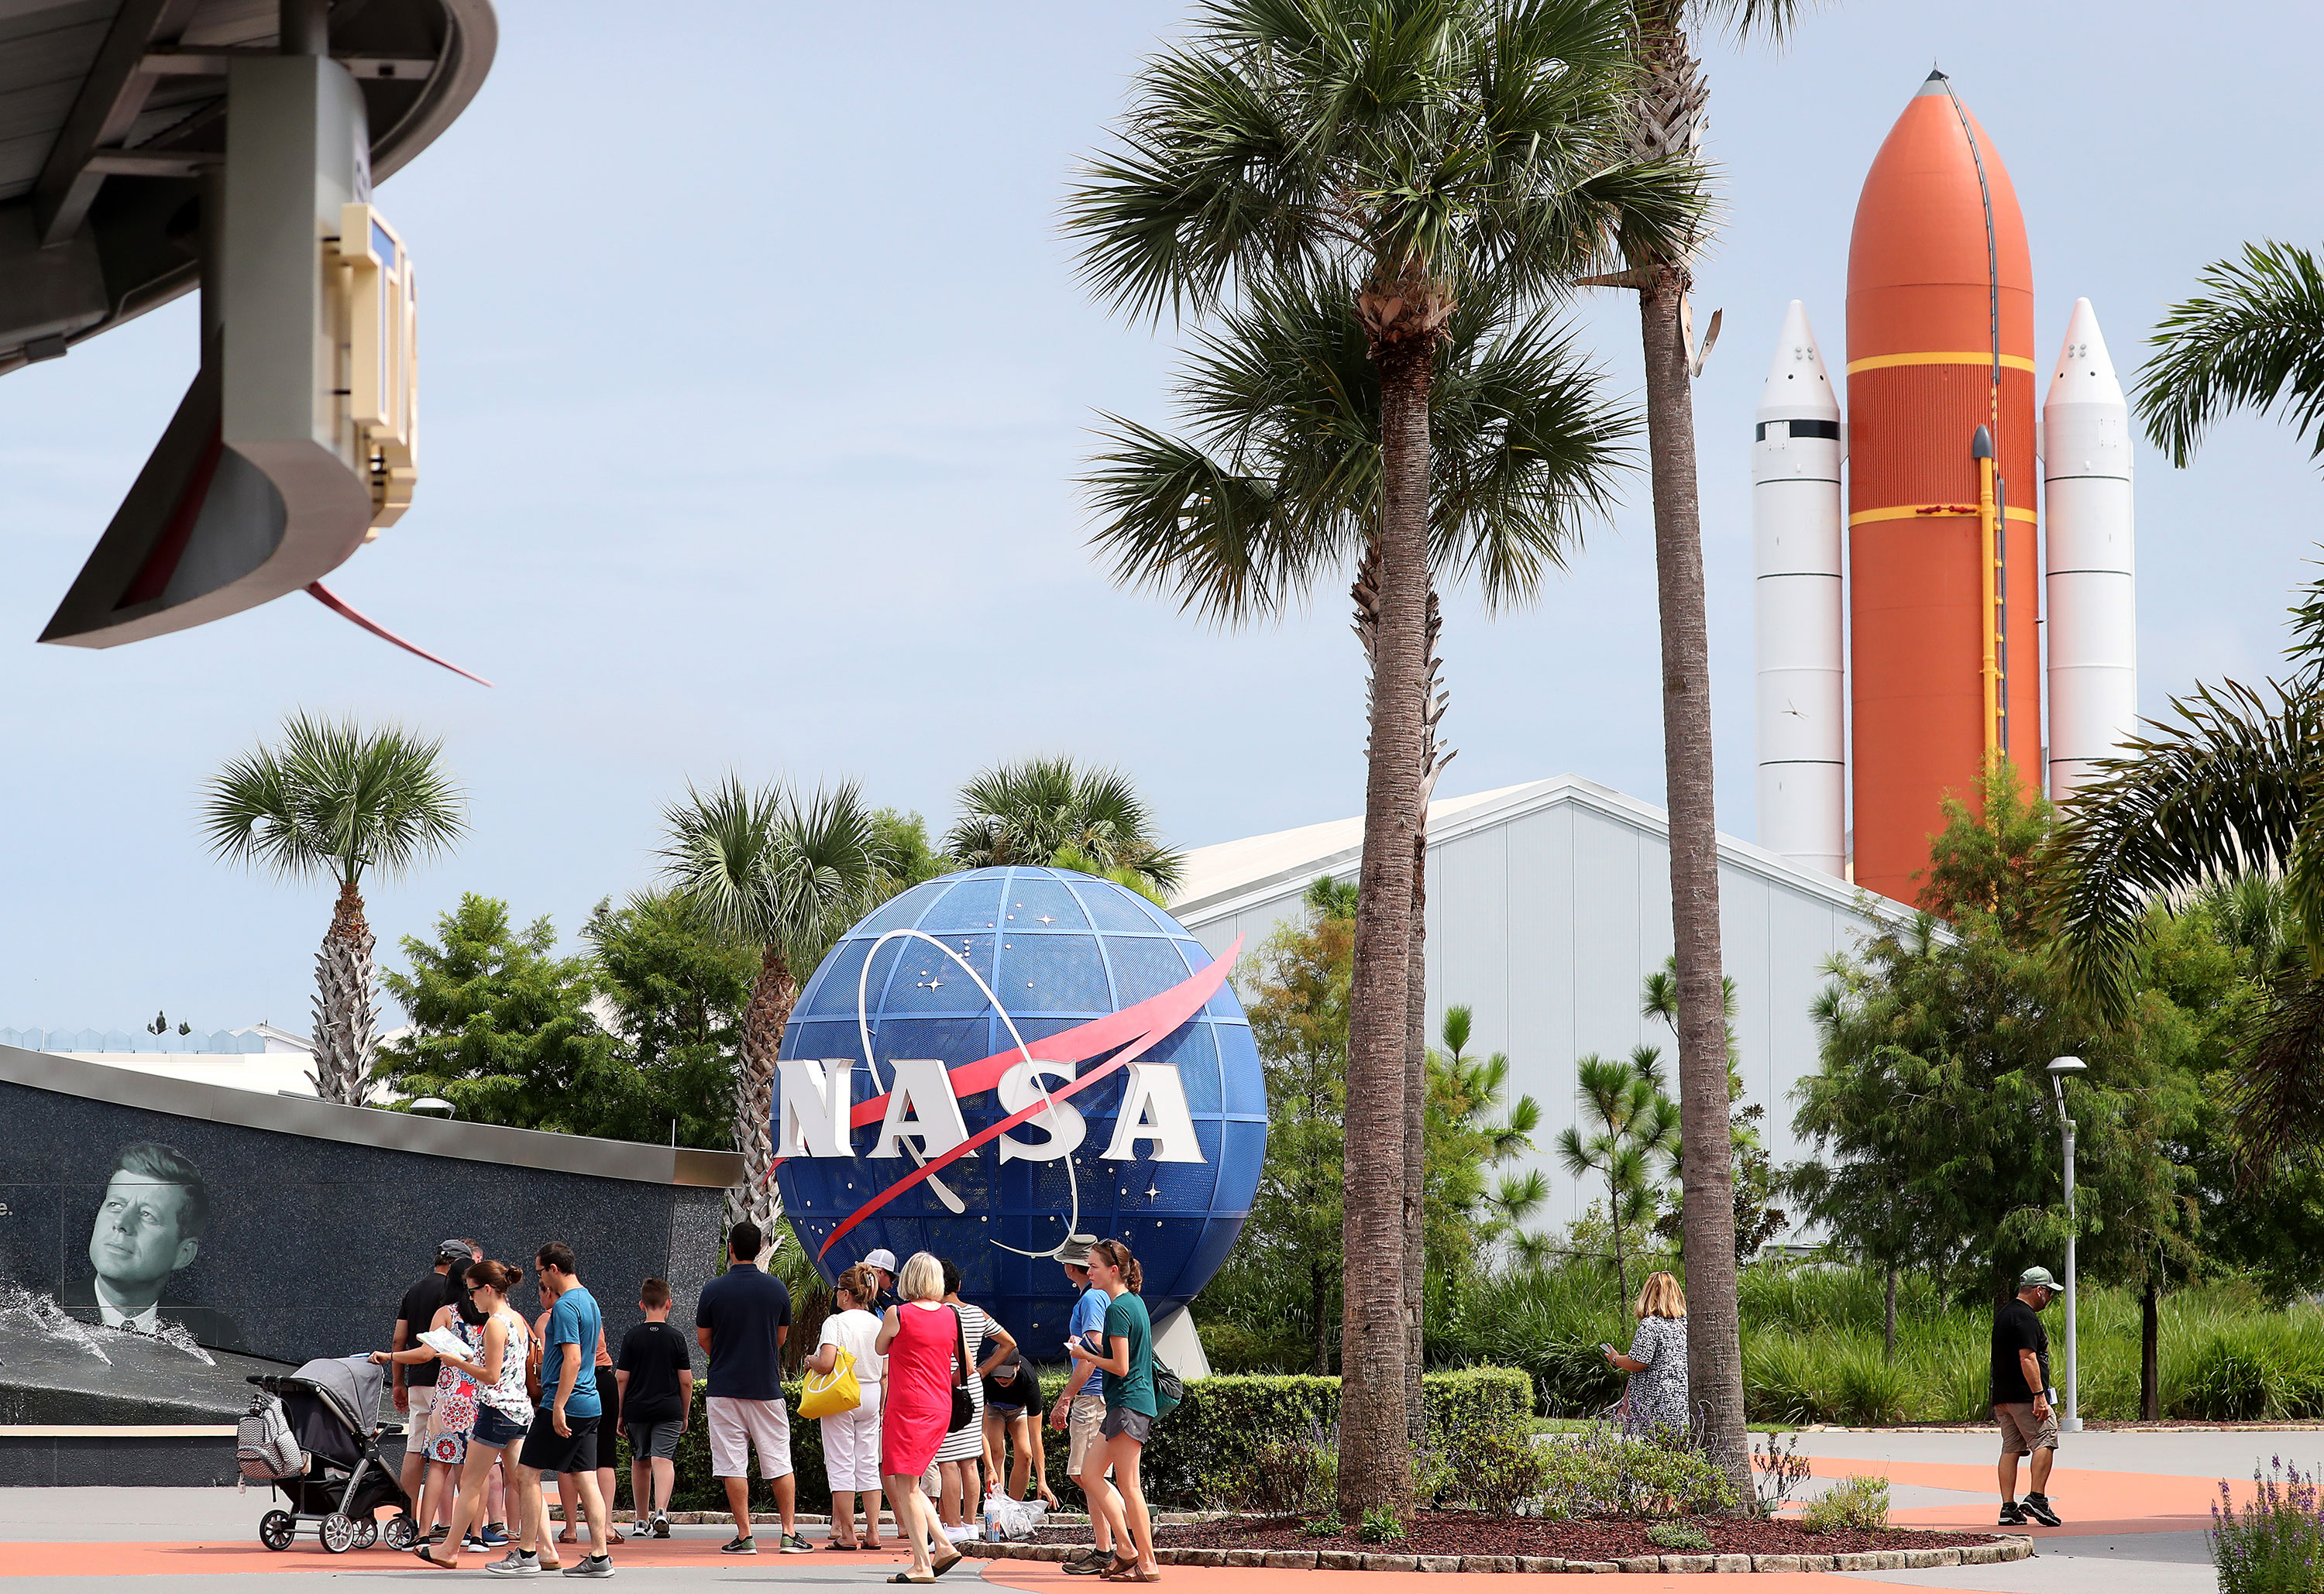 People visit the Kennedy Space Center Visitor Complex in Cape Canaveral, Florida, in August 2019.